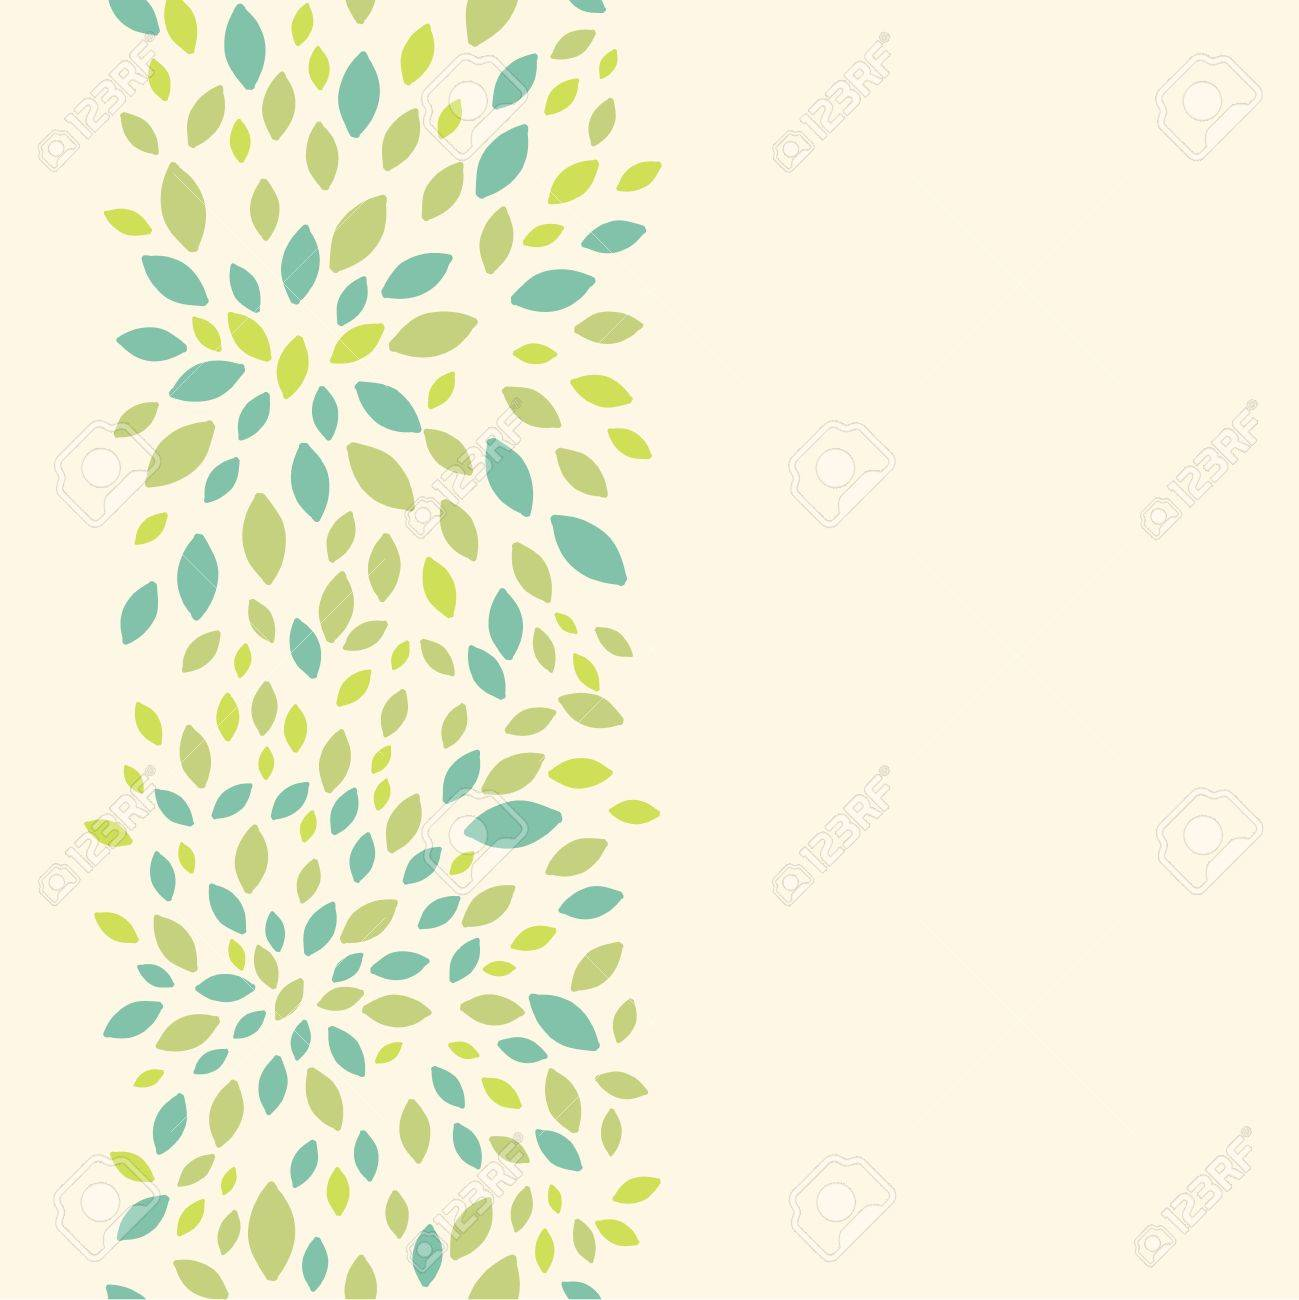 Leaf texture vertical seamless pattern background border Stock Vector - 16627500